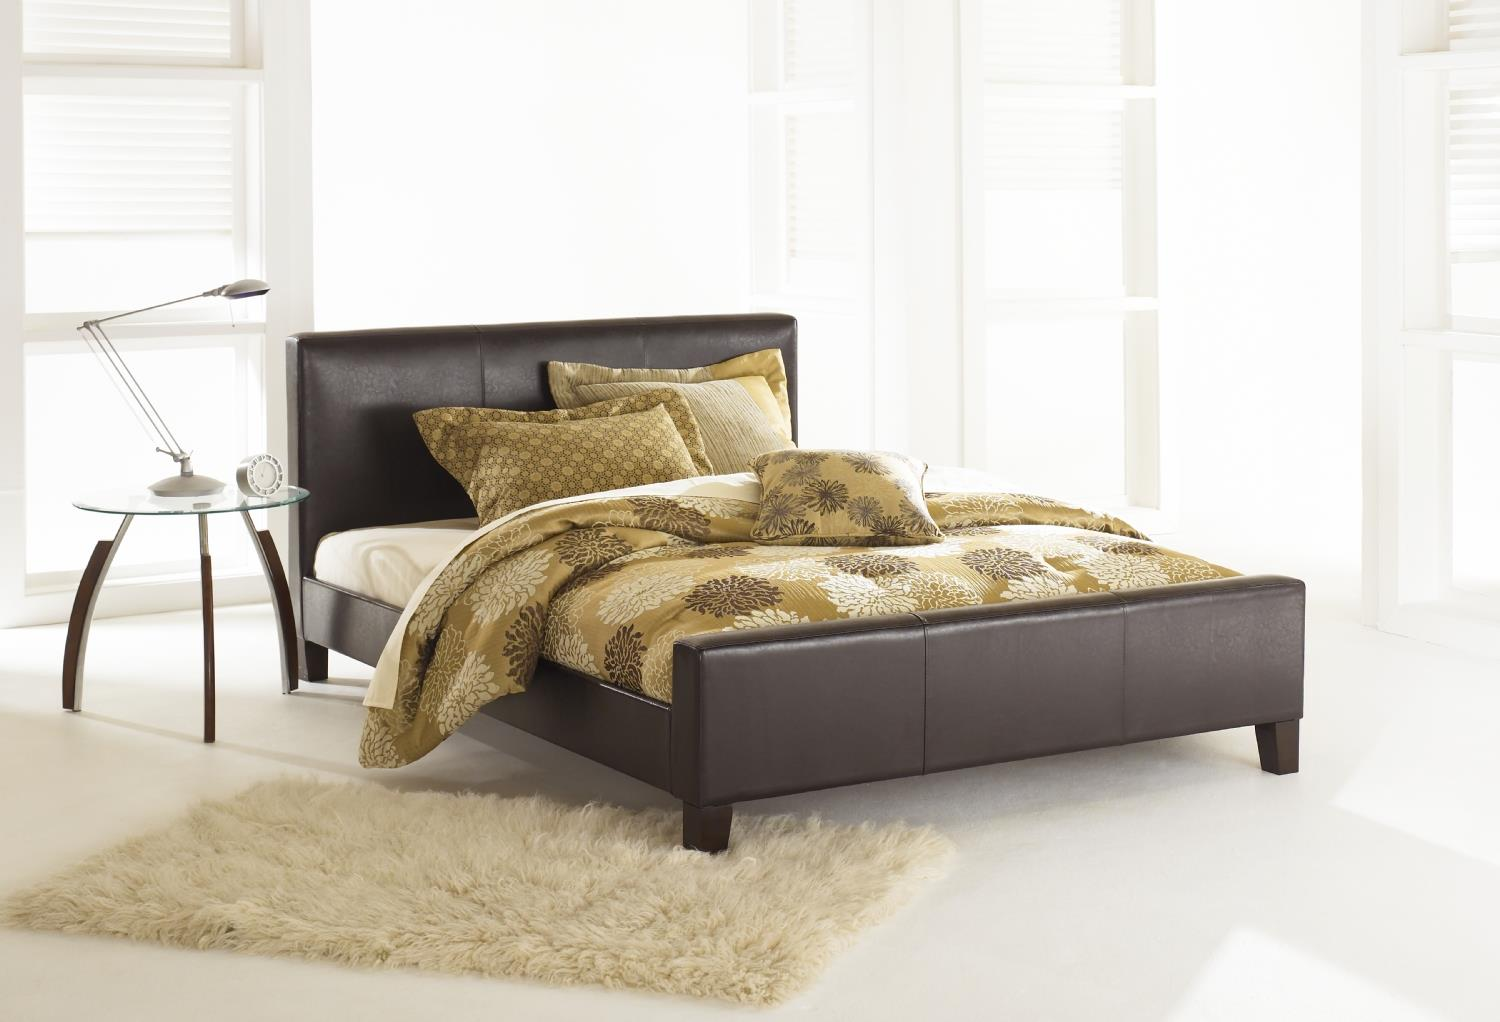 Fashion Bed Group Euro King Bed - Item Number: D91227137